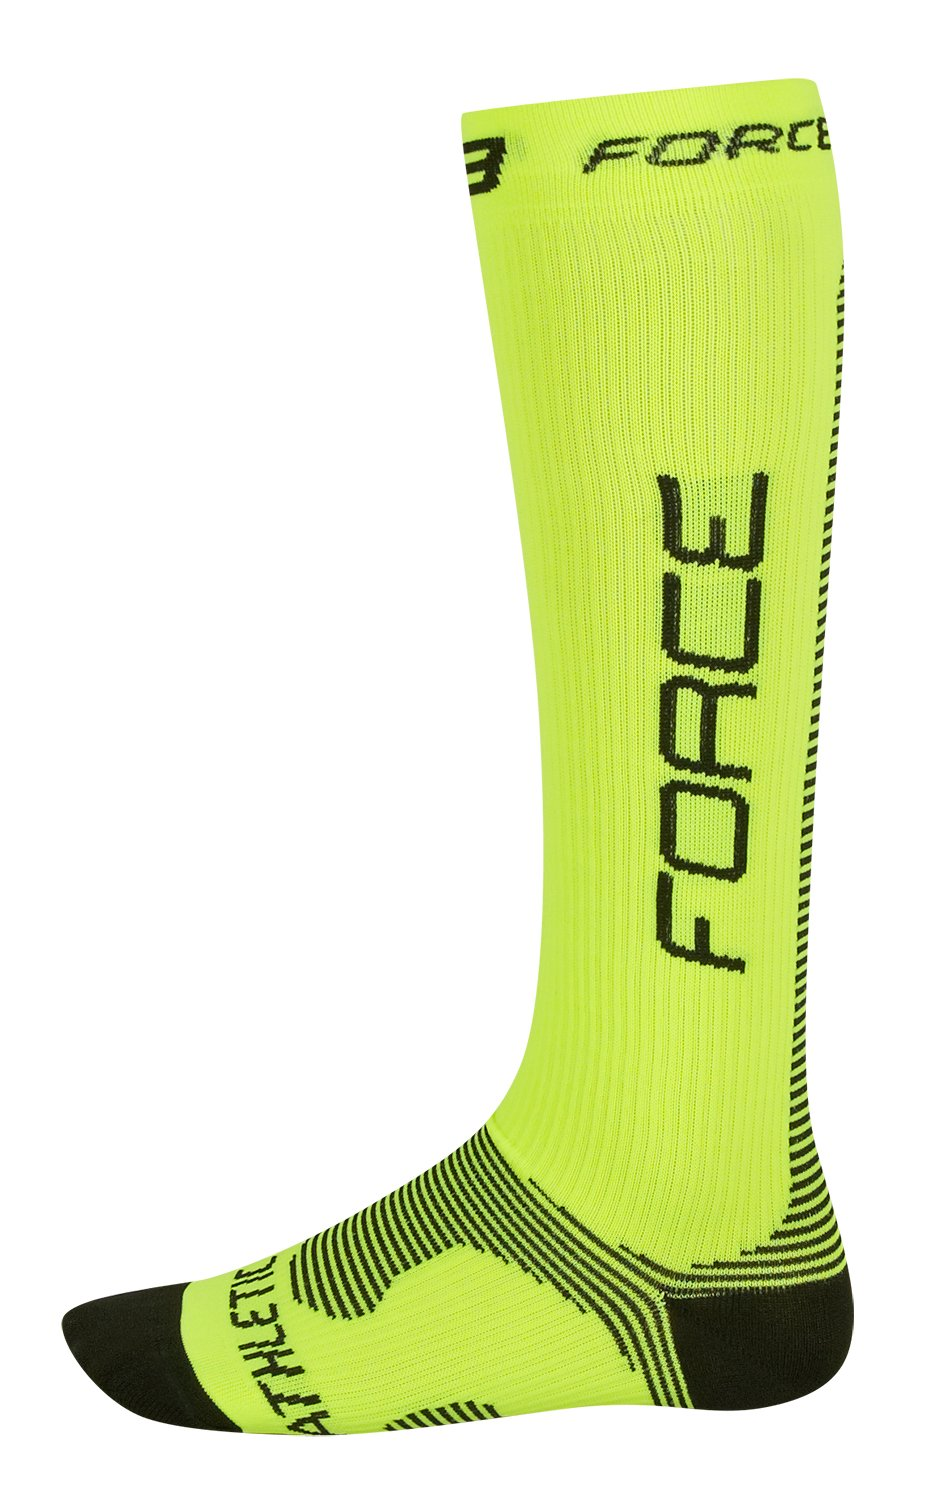 Force kompressionsstrømper Fluo / sort | Compression